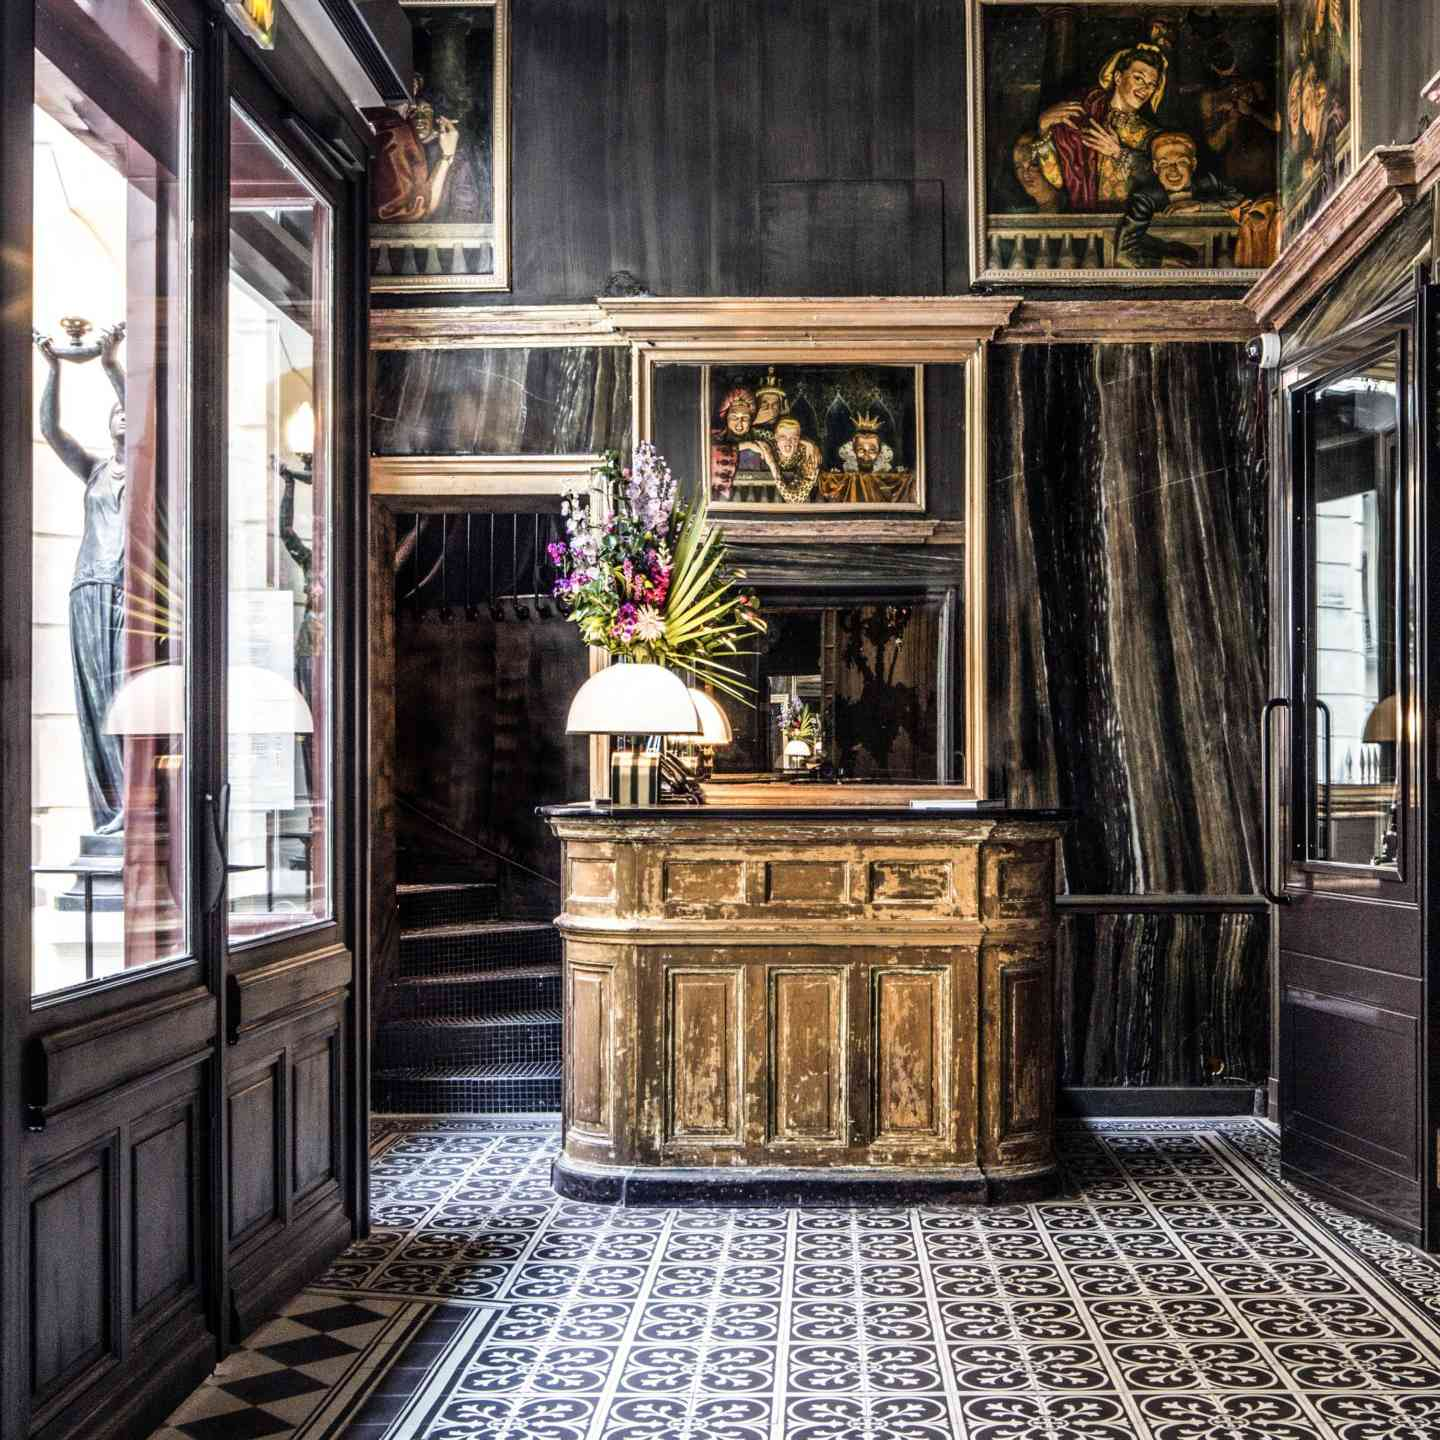 Boutique hotel lobby with vintage furniture and decor and a tile floor